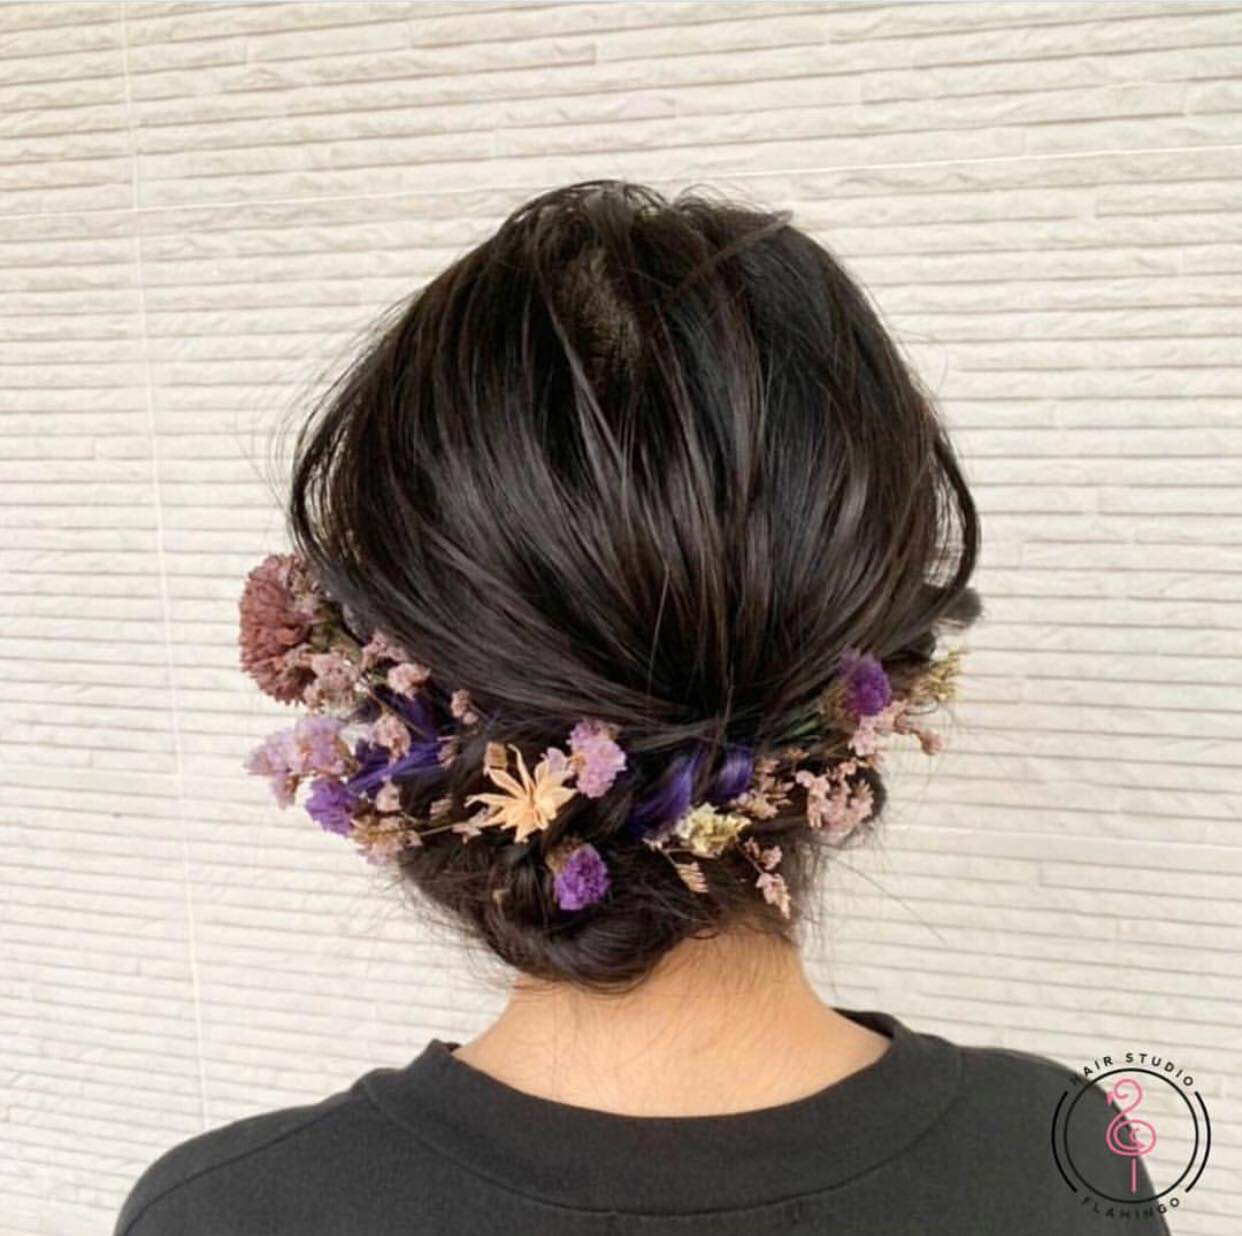 Creative Updo and Hair Styling by Flamingo Hair Studio